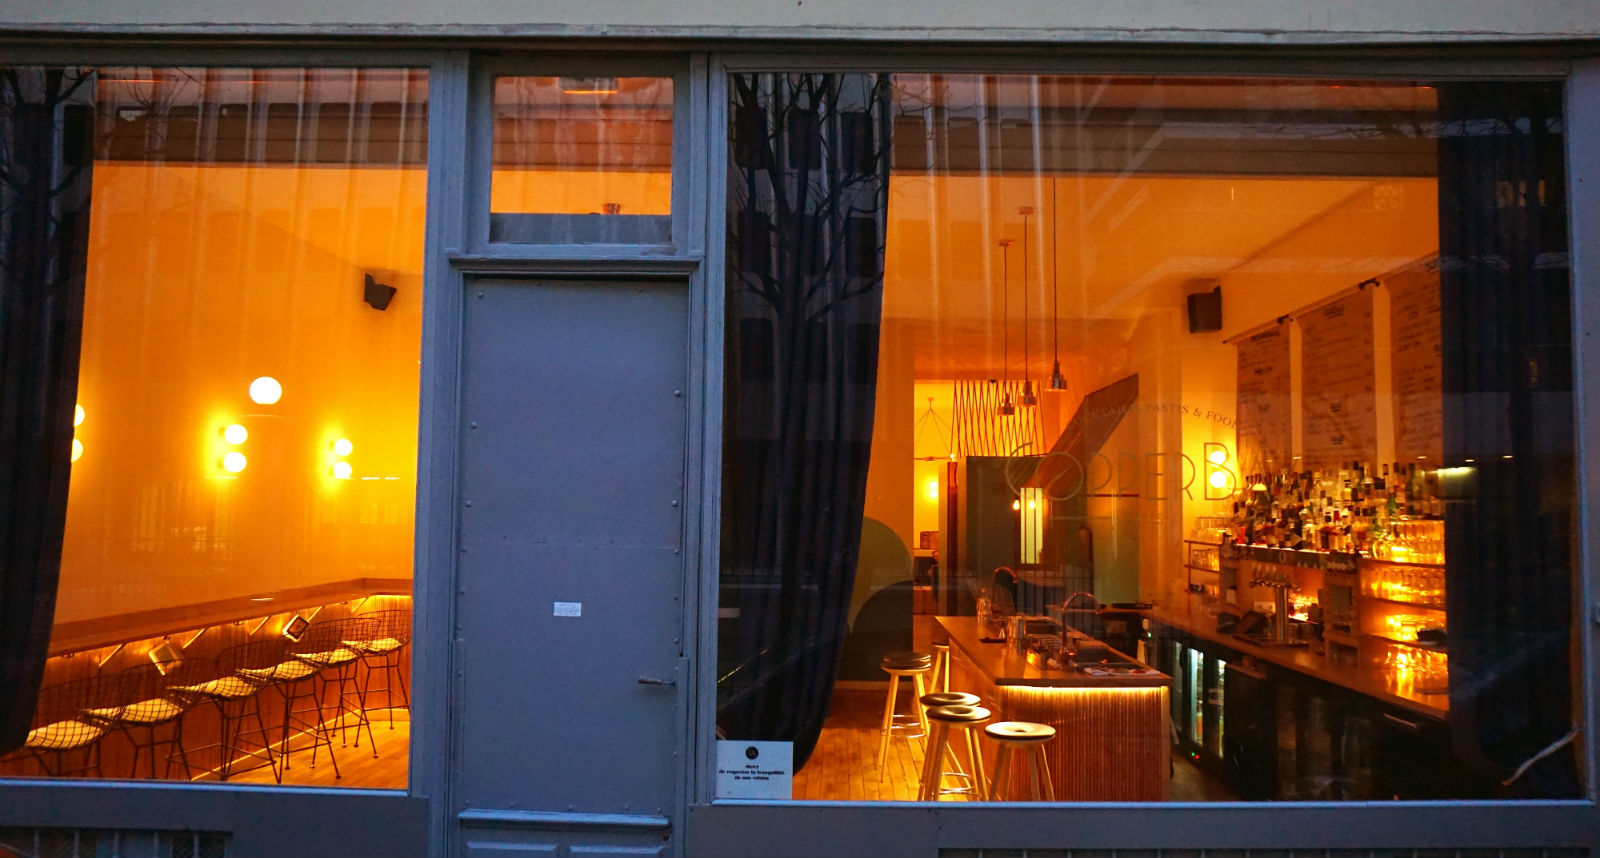 HiP Paris blog. Endless summer at Copper Bay Cocktail Bar in the 10th arrondissement. Big windows show a warm, inviting atmosphere.